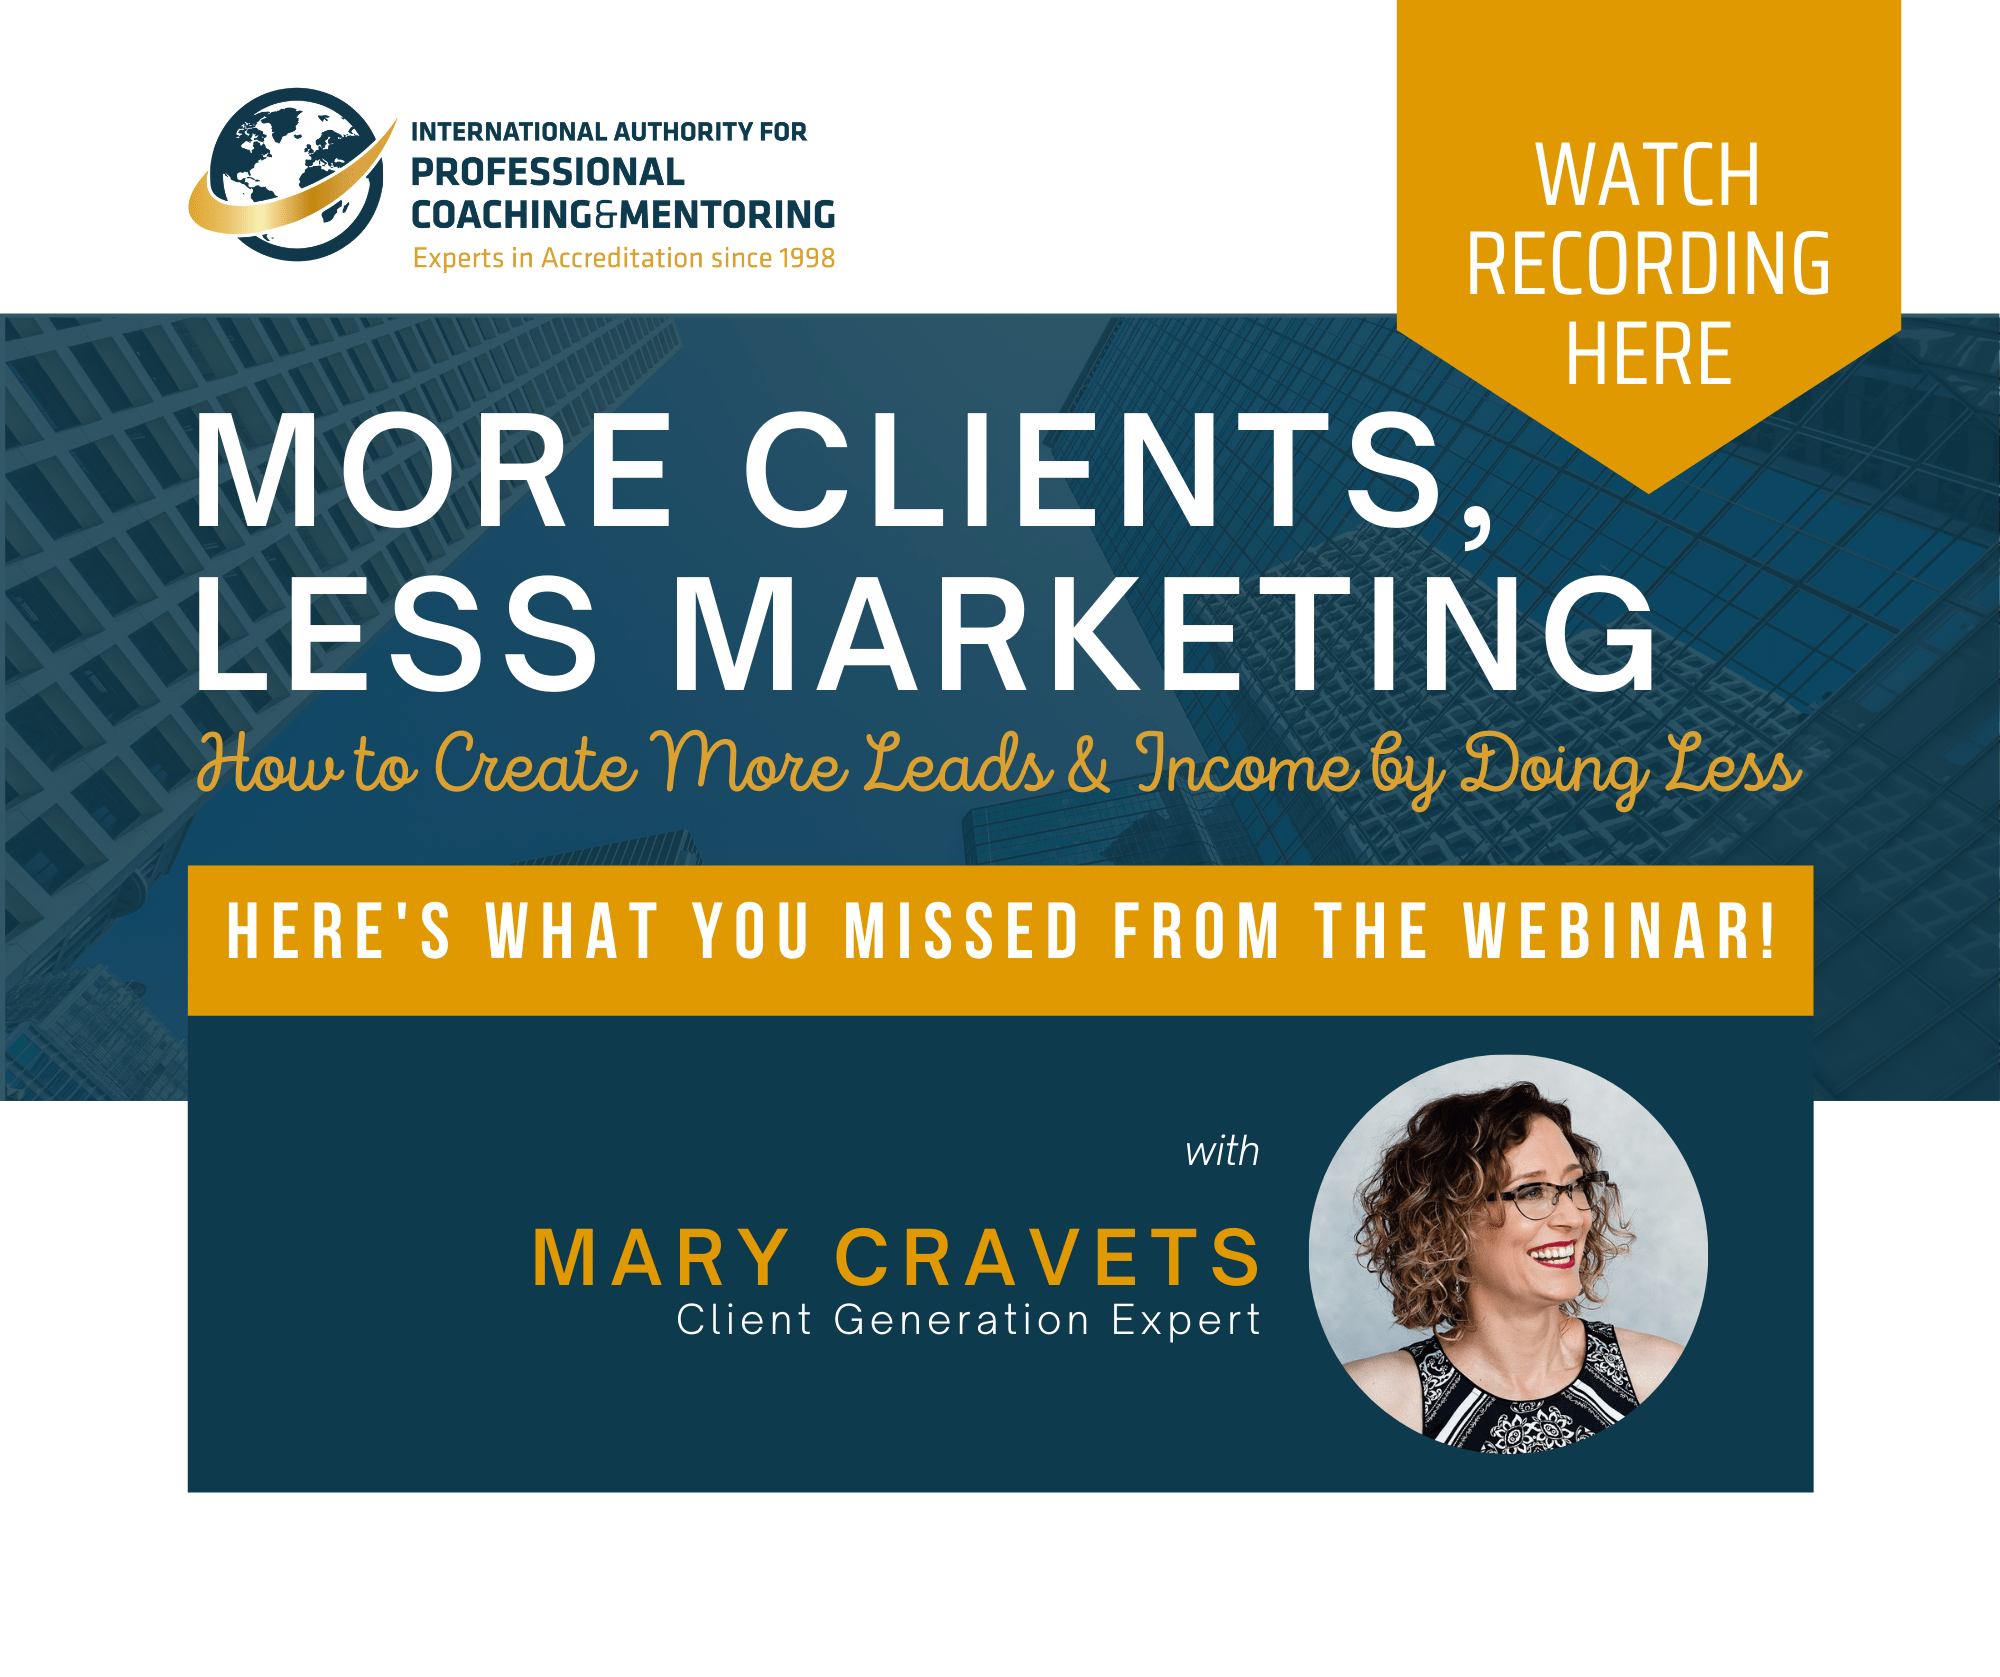 MORE CLIENTS, LESS MARKETING with Mary Cravets (Here's What You Missed!)